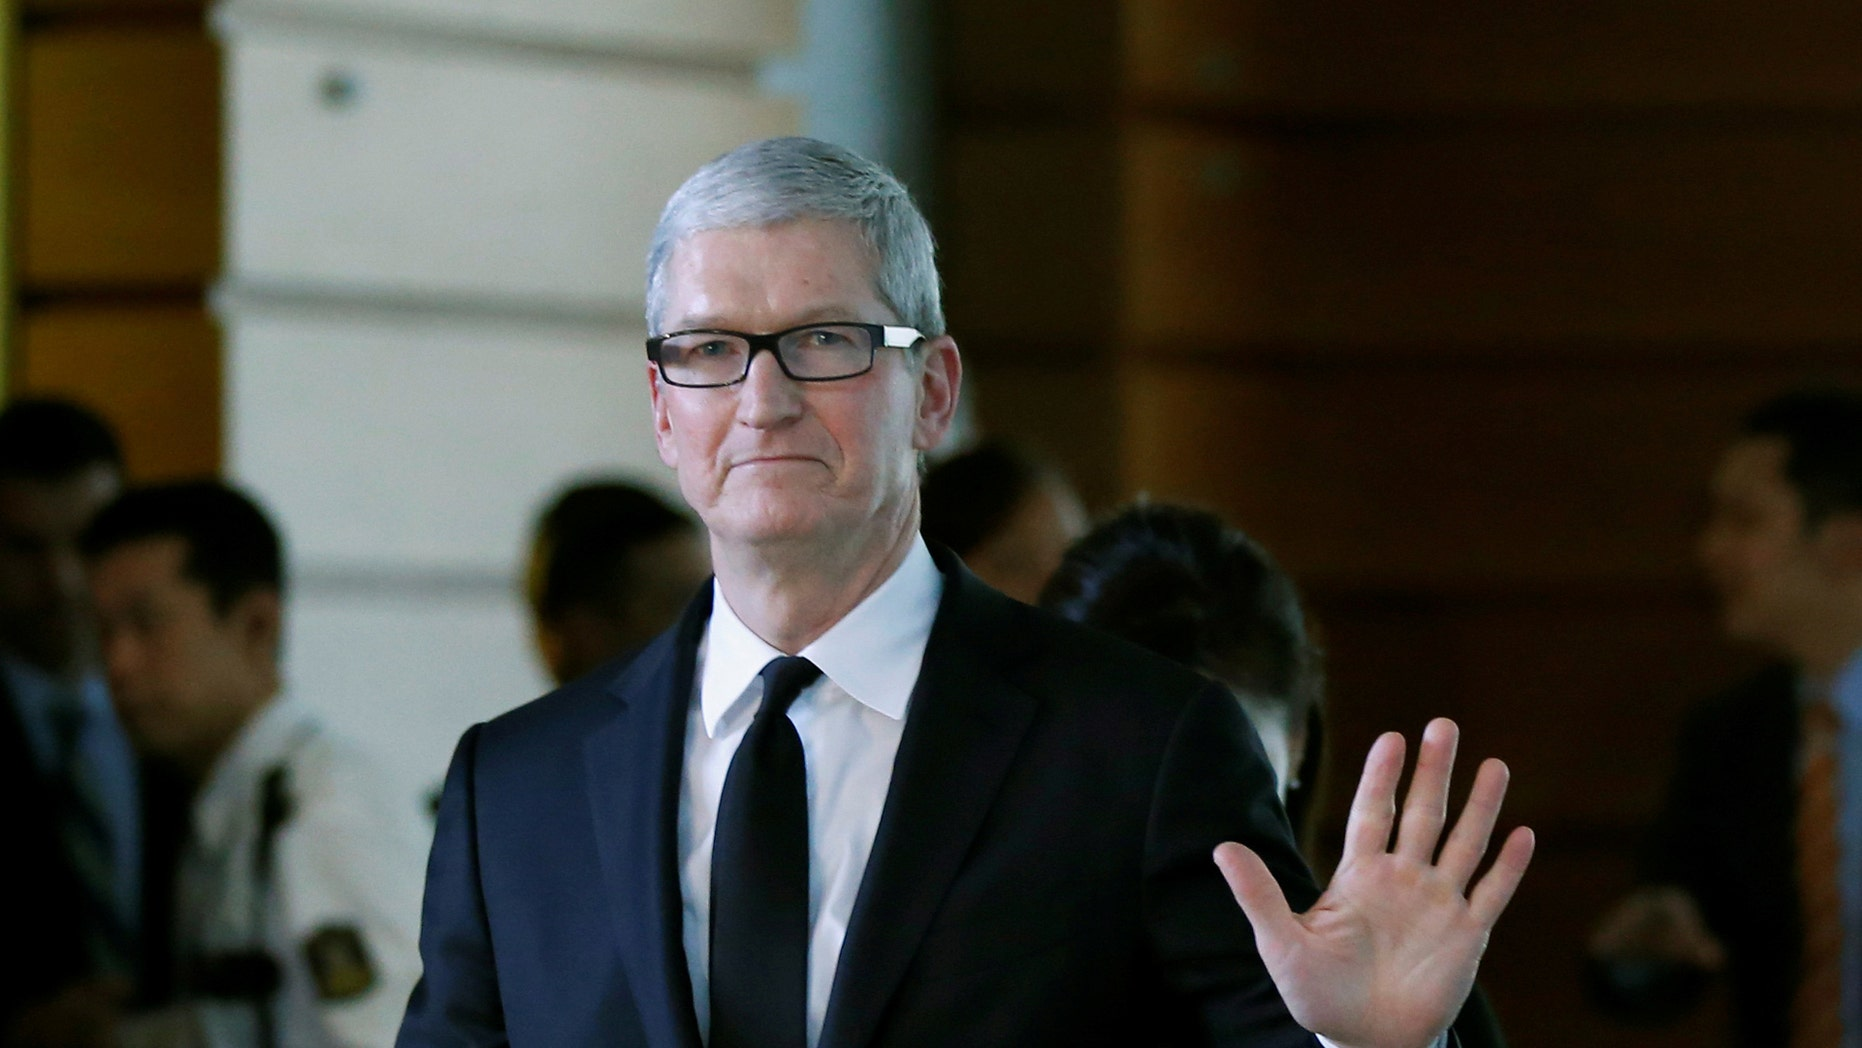 Apple Inc CEO Tim Cook waves after meeting with Japan's Prime Minister Shinzo Abe at Abe's official residence in Tokyo, Japan, October 14, 2016. (REUTERS/Toru Hanai)